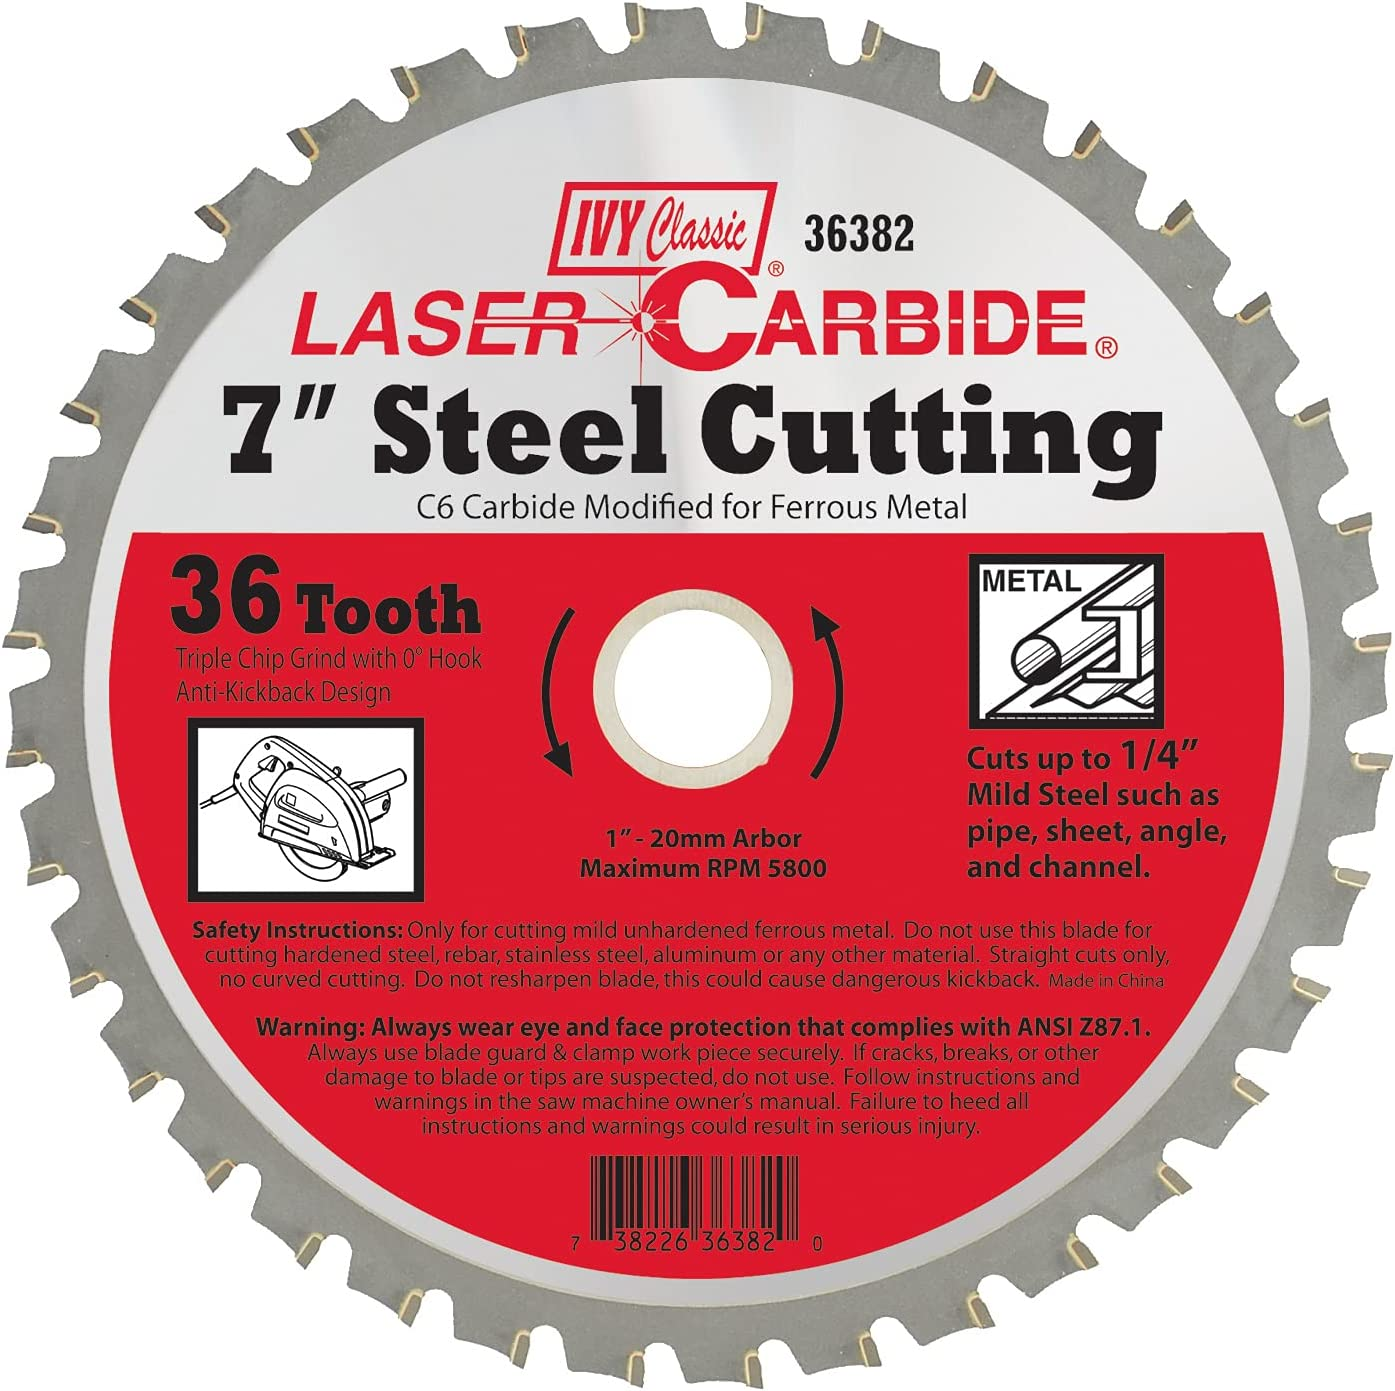 IVY Classic online Max 41% OFF shopping 36382 Laser Carbide 7-inch Cutting Ci Steel 36 Tooth